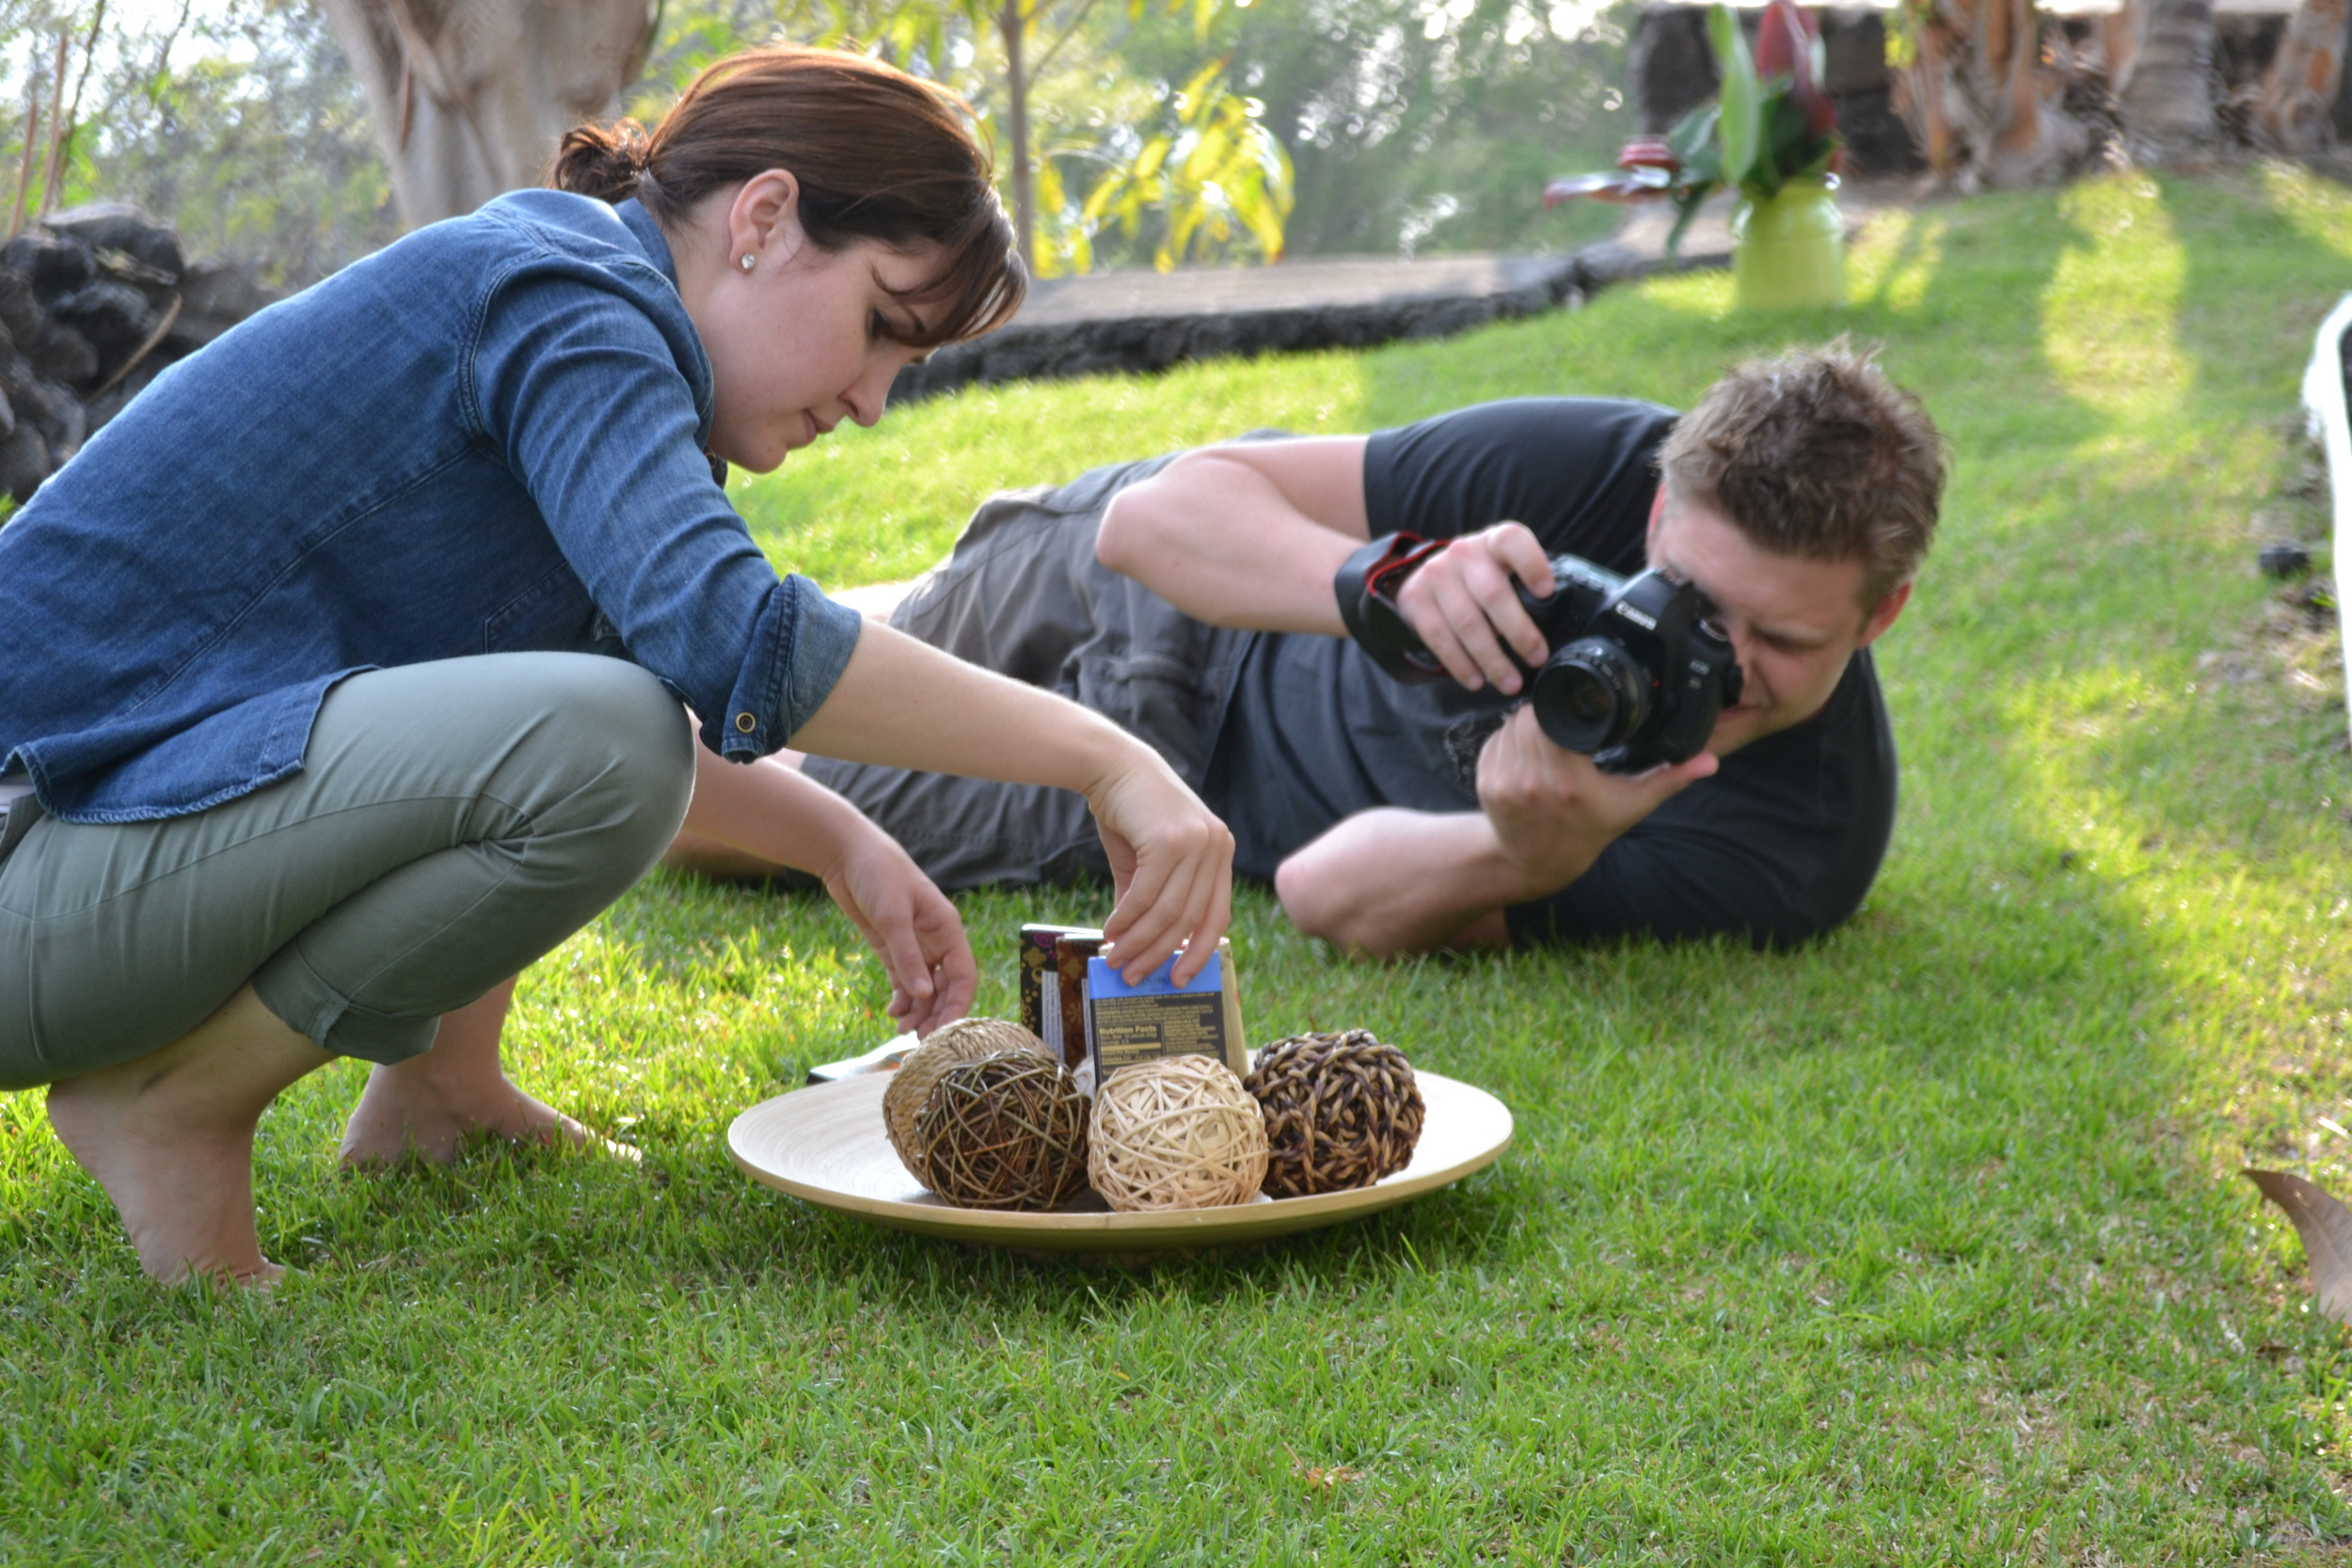 Editor-in-Chief, Fay Johnson, and photographer Brandon Dube, working on product stills for the chocolate article. Kona, Hawaii.